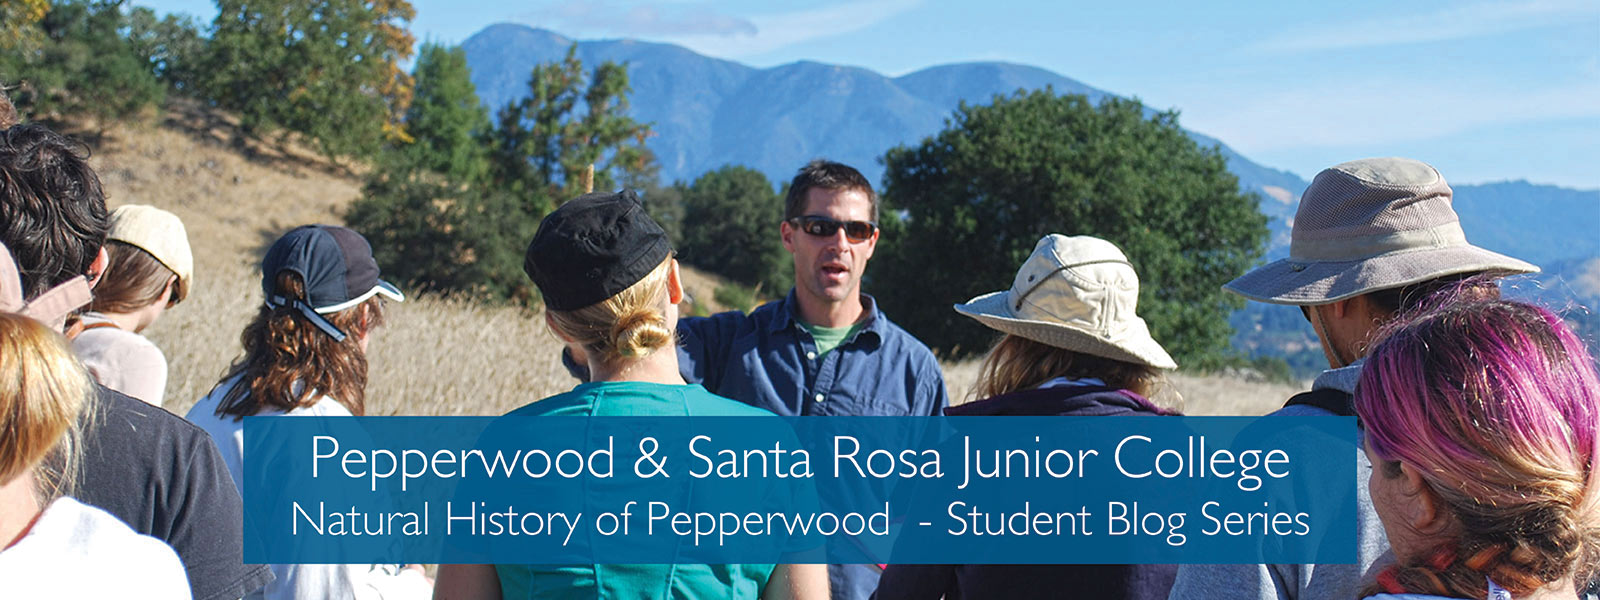 pepperwood-blog-bio-85-header-web